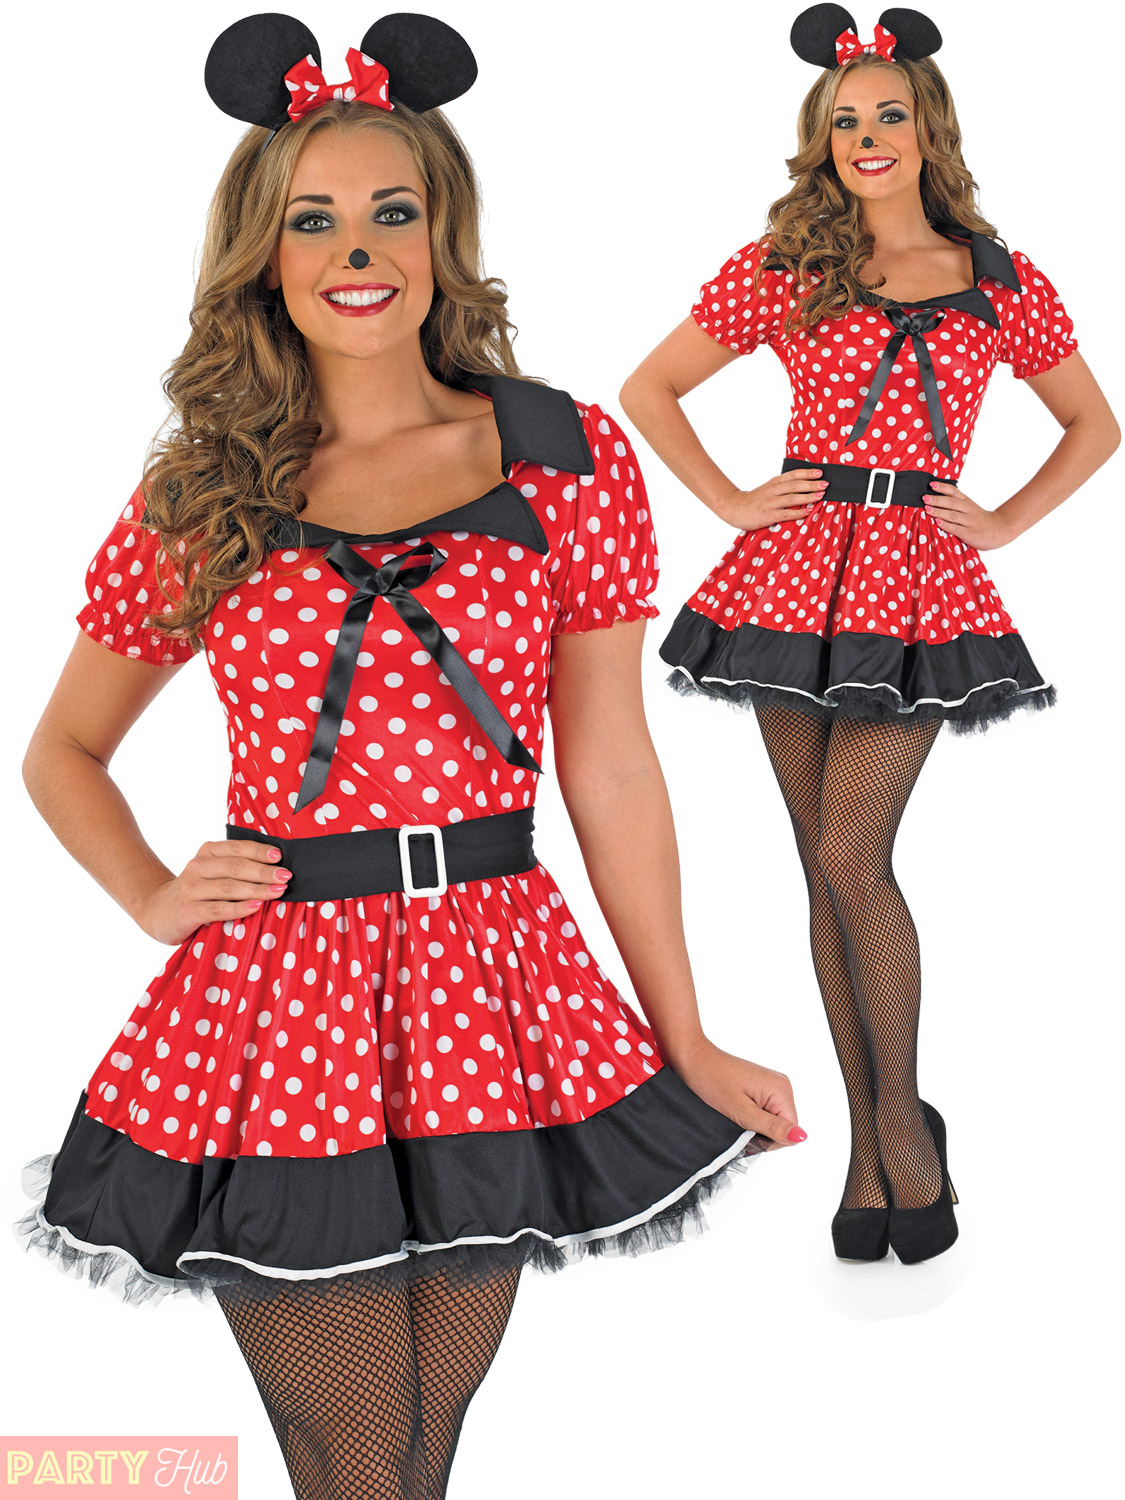 Ladies Missy Mouse Costume Adults Mini Fancy Dress Womens Book Week Day Outfit